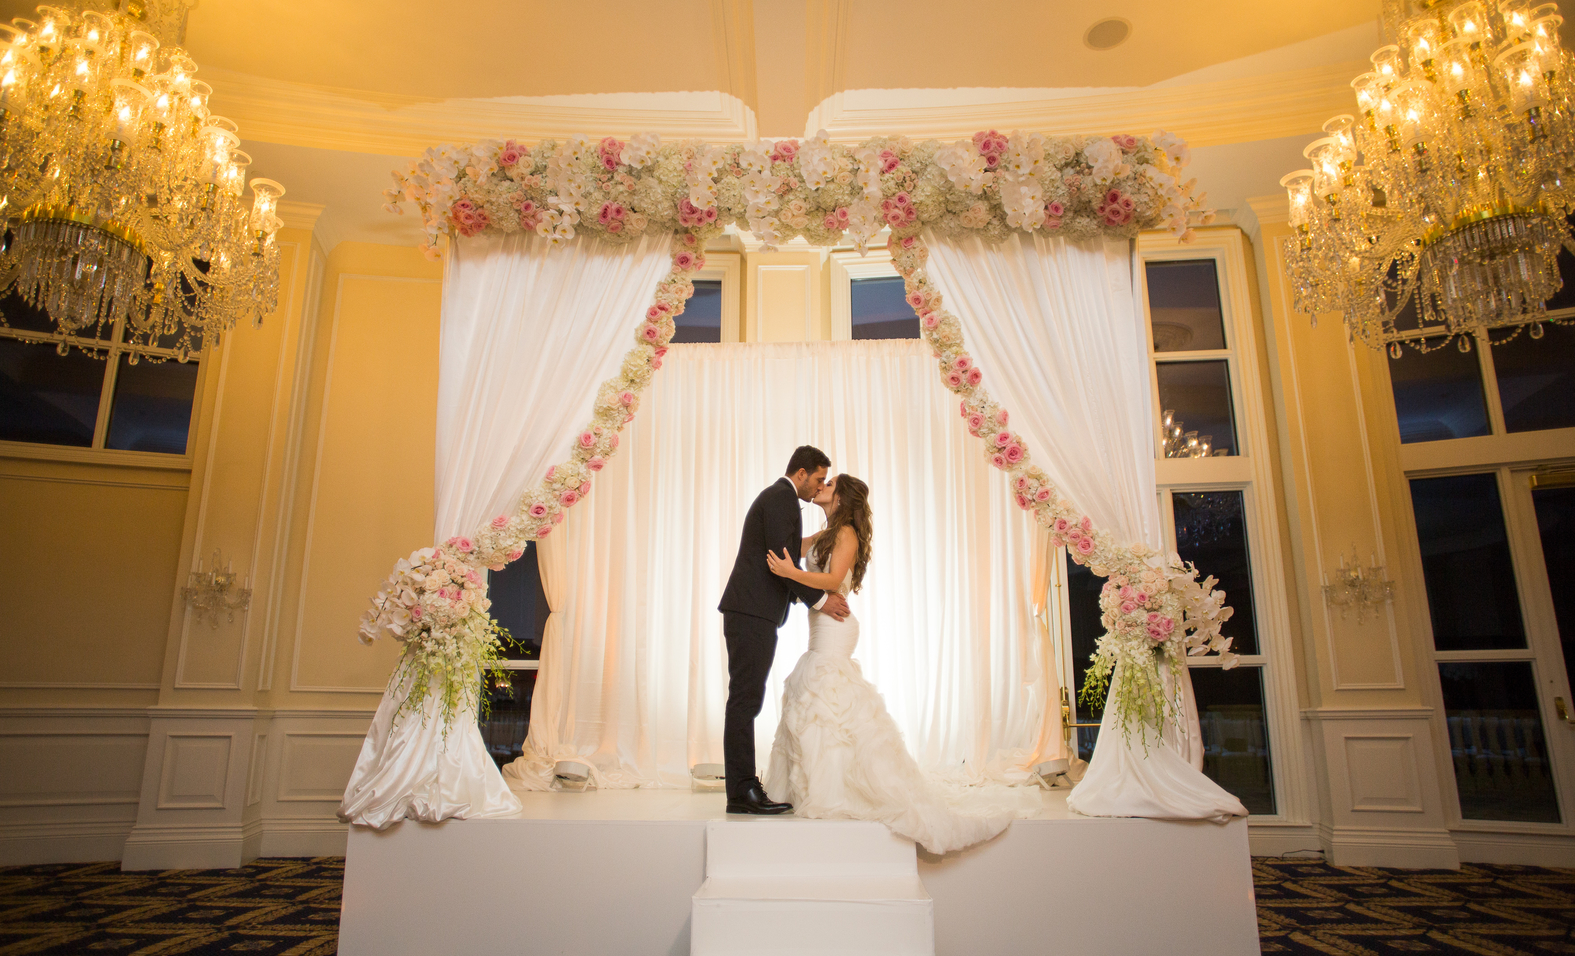 South Florida Wedding Florist Specializing In Fl Design Event Production